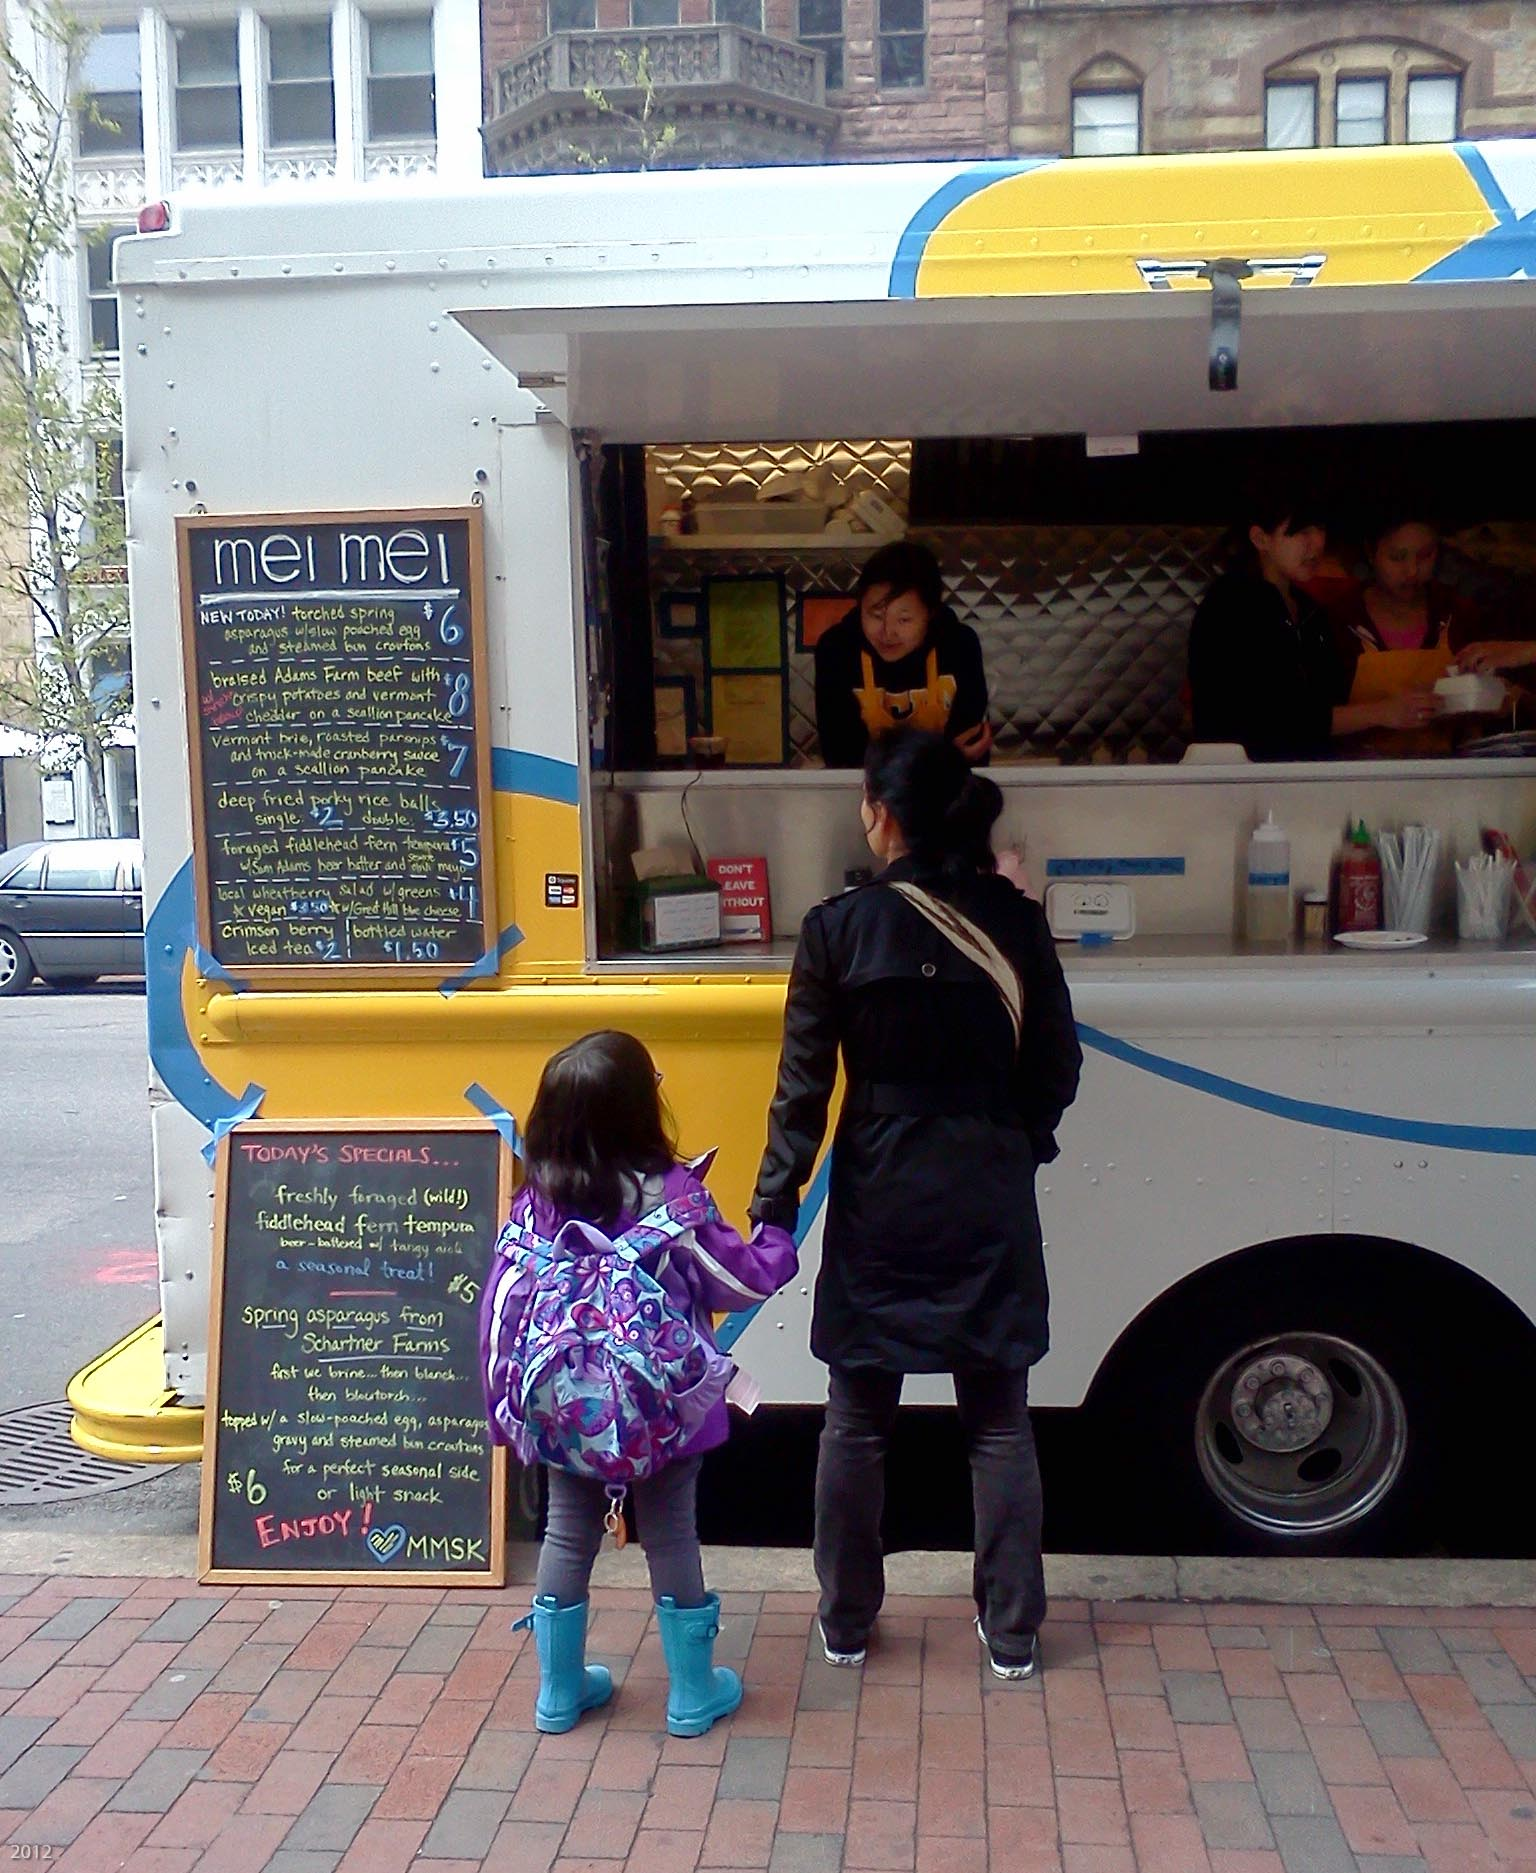 Boston Food Truck Blog: Reviews and Ratings | Chowin' down on the